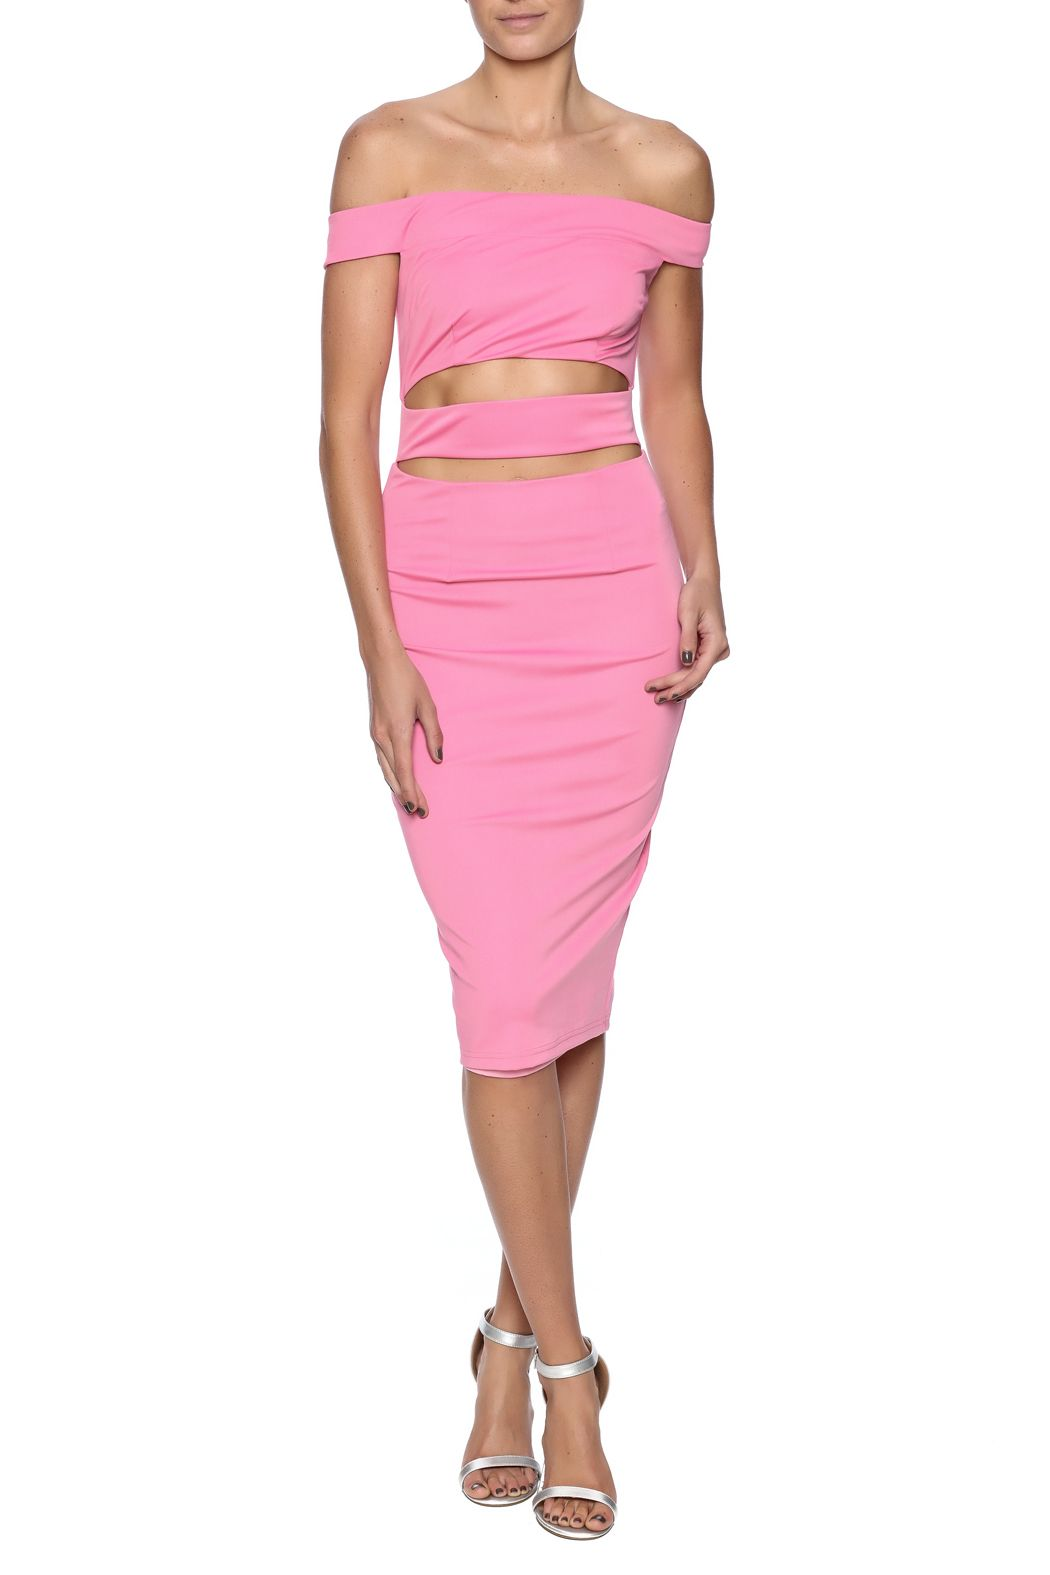 Dance & Marvel Pink Cutout Dress